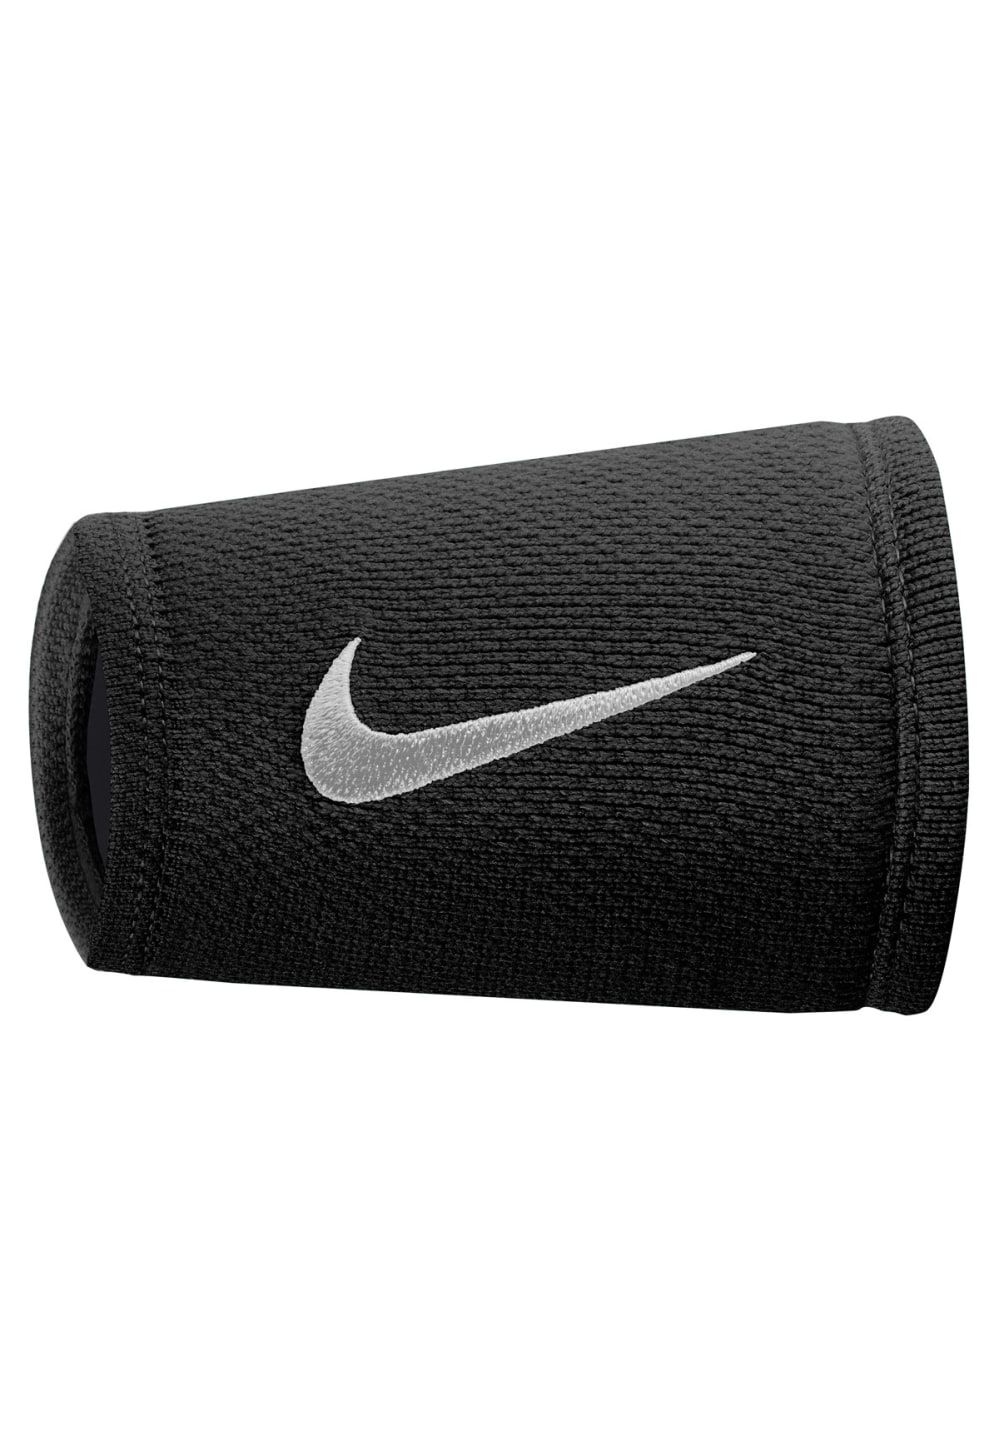 huge selection of adf80 0d46d Dri-Fit Stealth Doublewide Wristbands - Running accessories